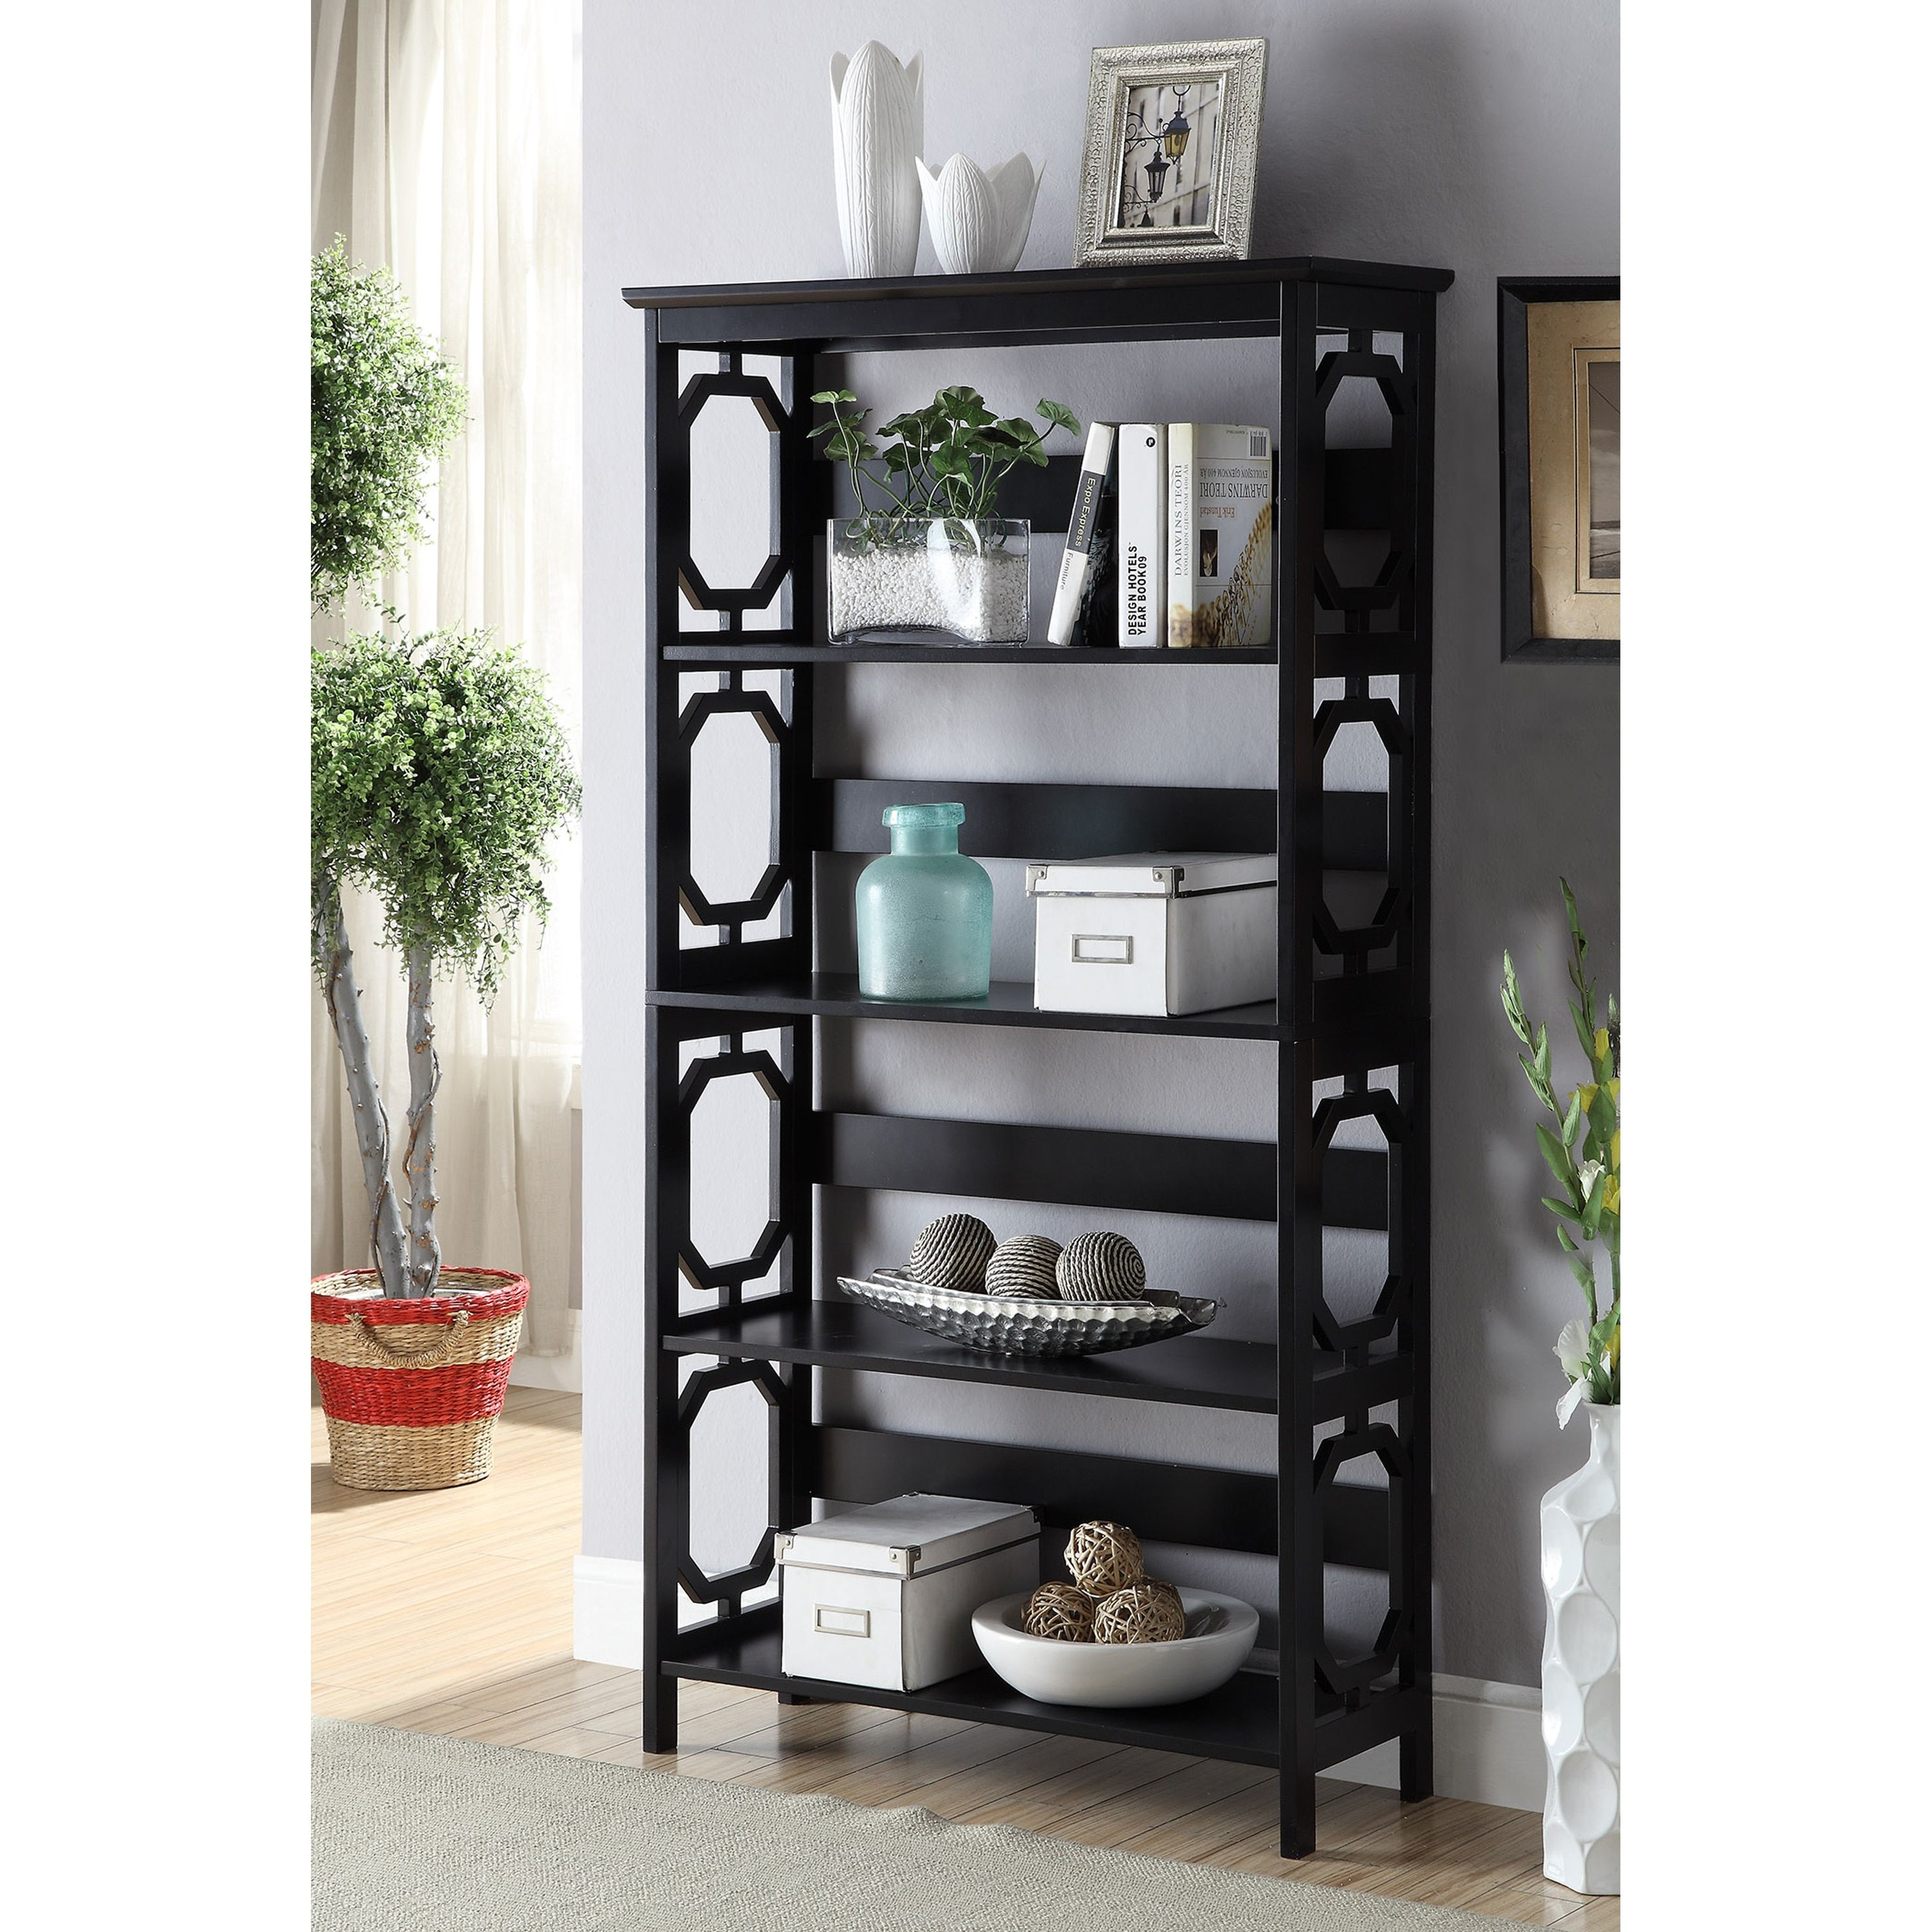 Bookcase Home Goods Free Shipping On Orders Over 45 At Overstock